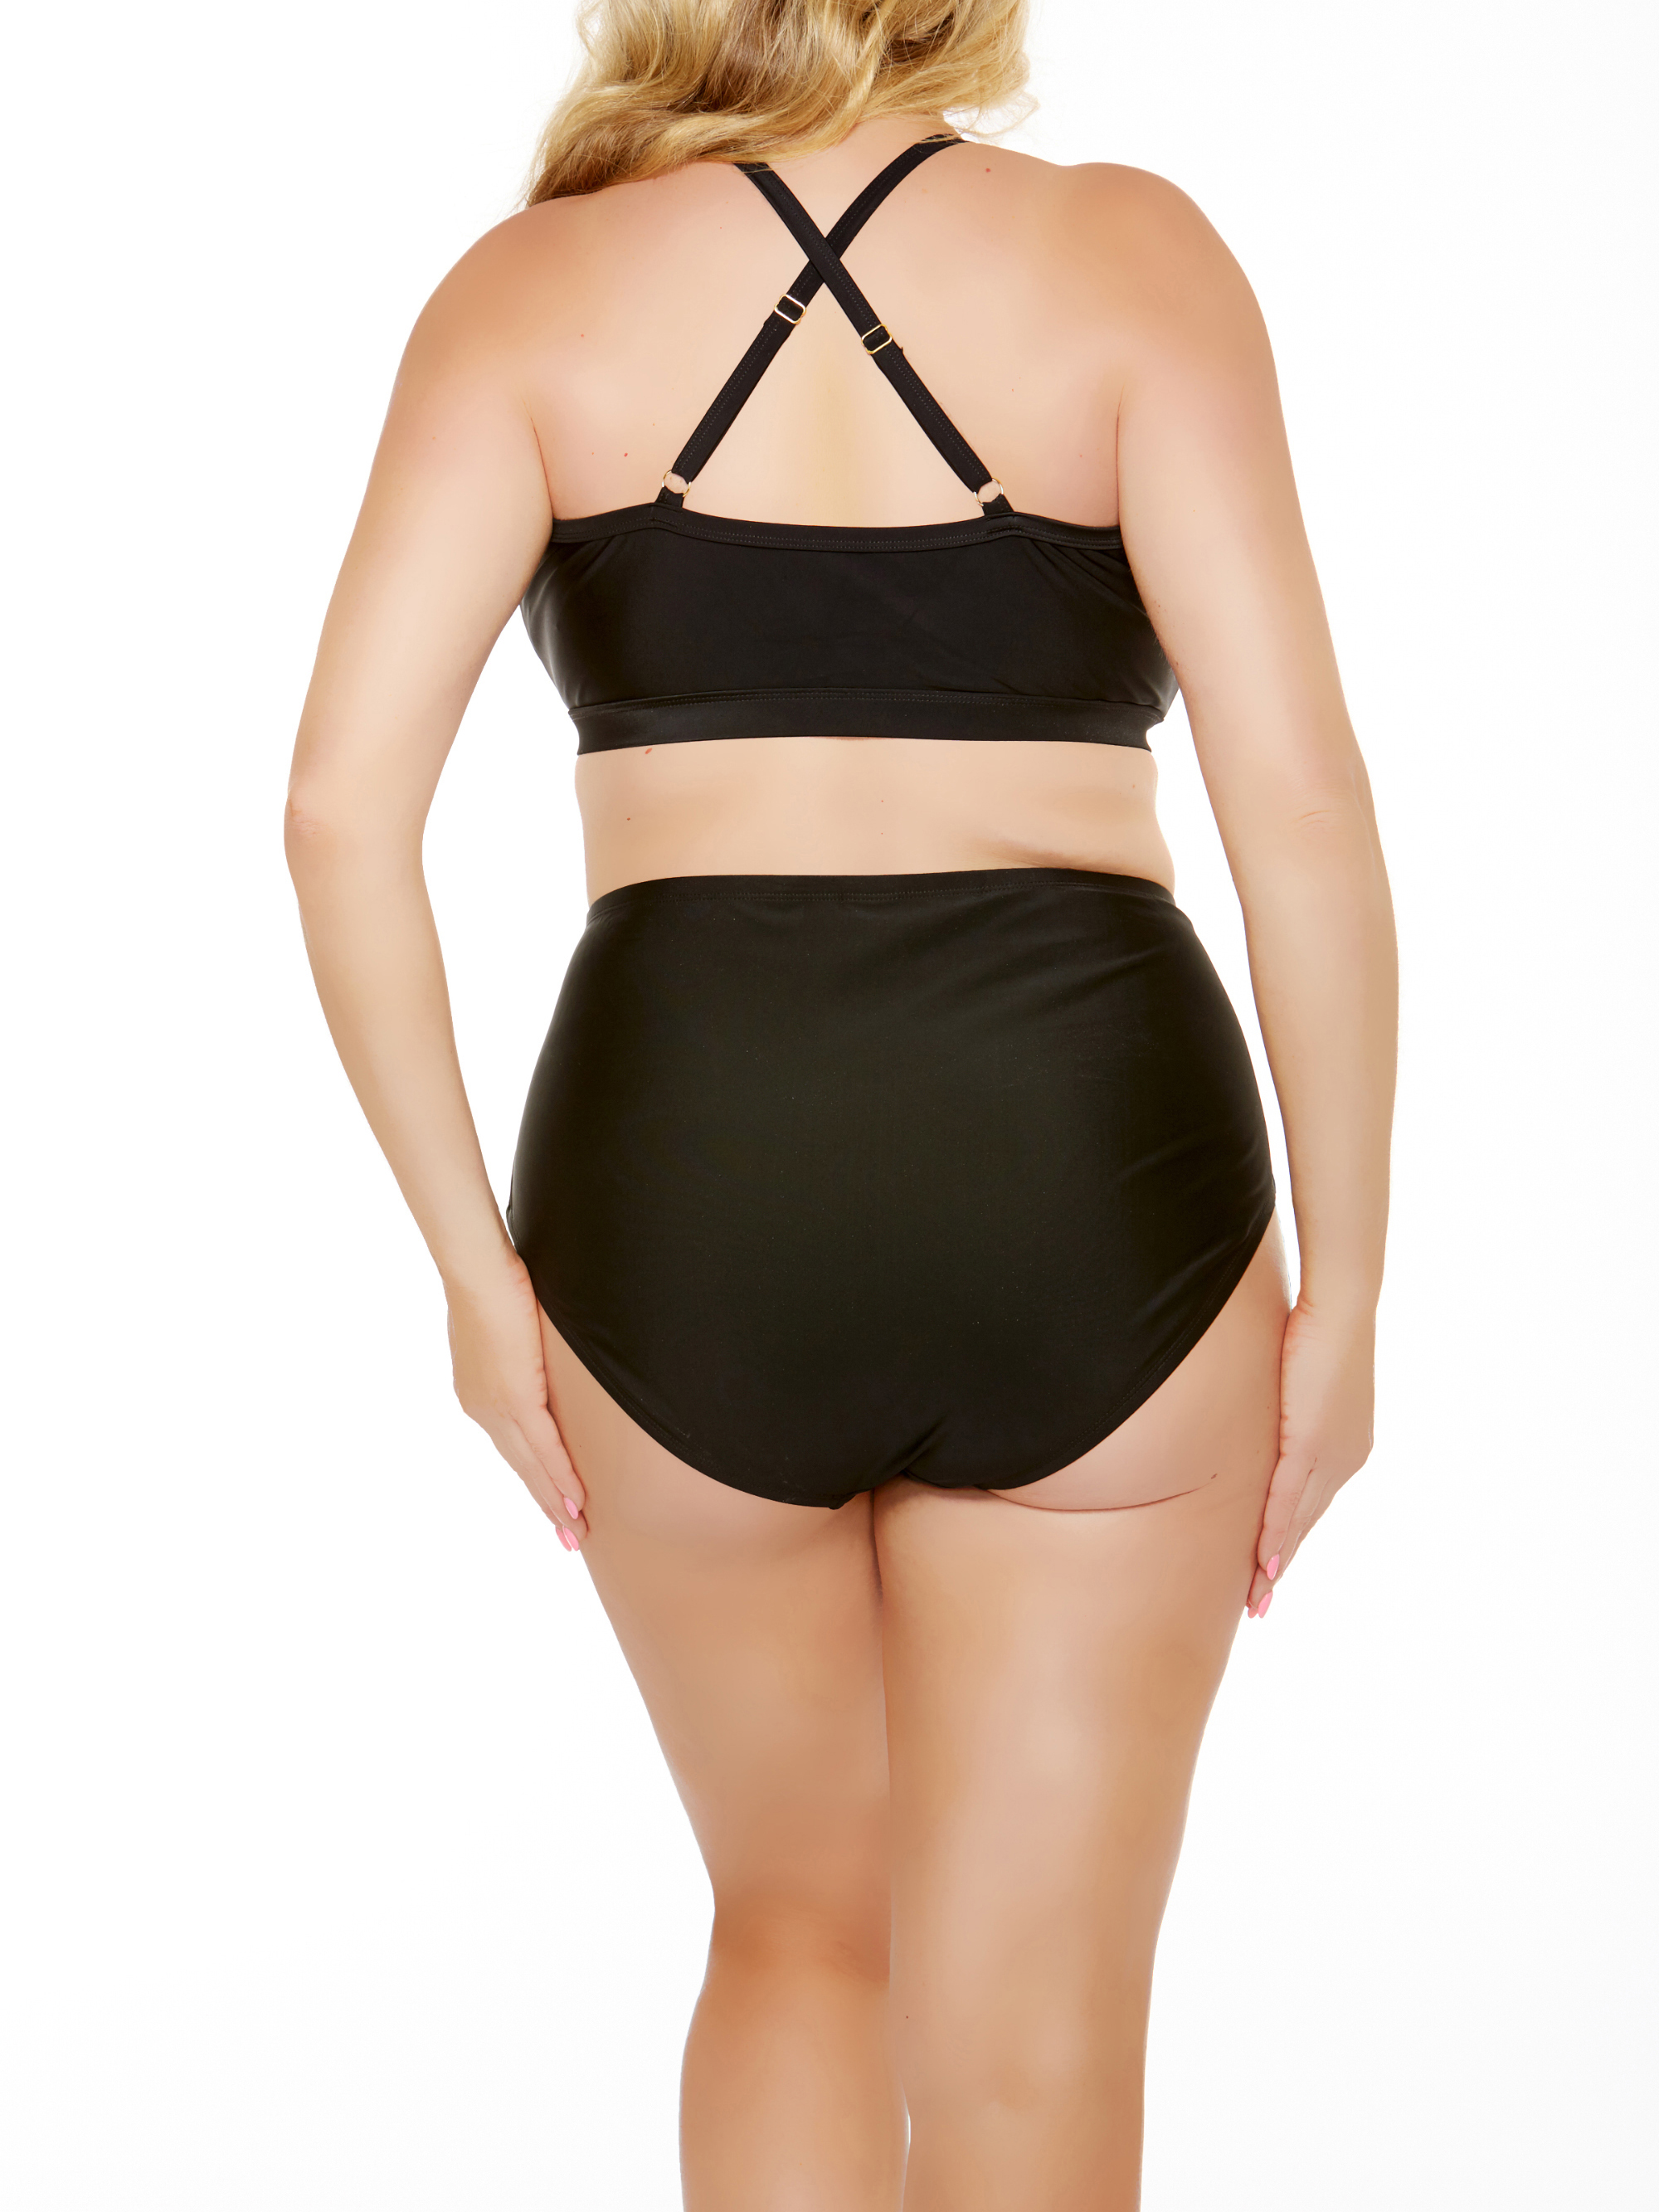 3ddd2660 Time and Tru - Women's Plus-Size High-Neck Black & White Mesh Halter Bikini  Top - Walmart.com